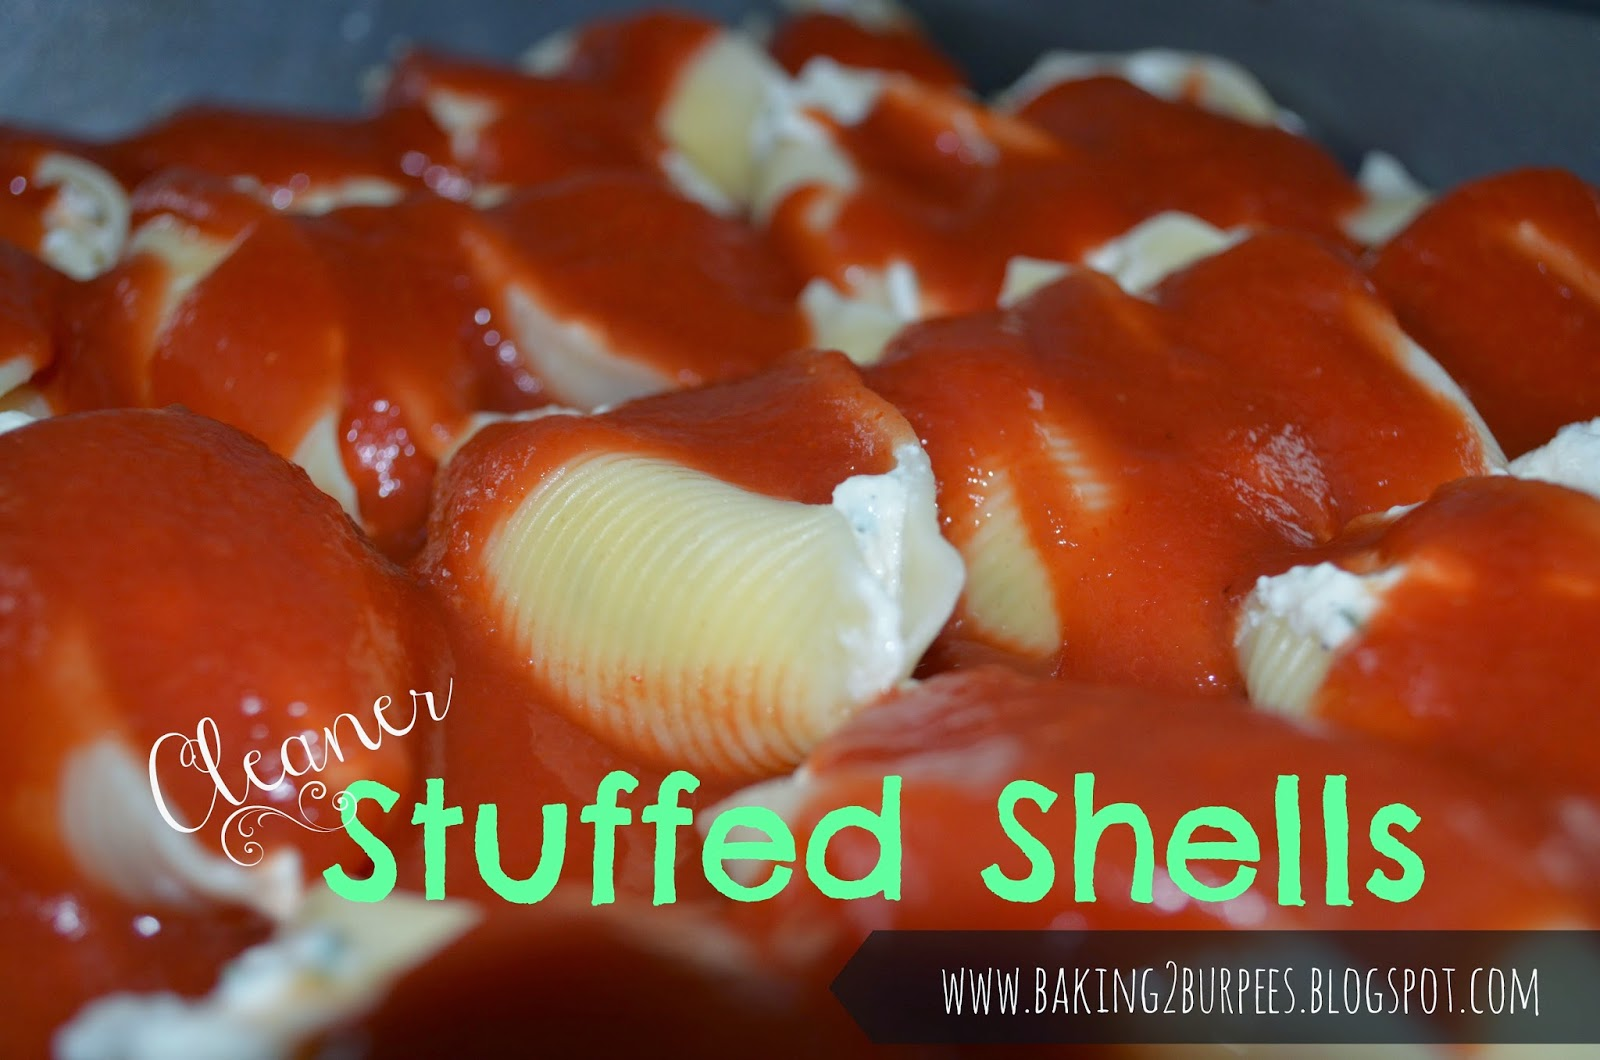 Erin Traill, diamond beachbody coach, clean stuffed shells, healthy recipe, clean eating pasta, dramatic weight loss